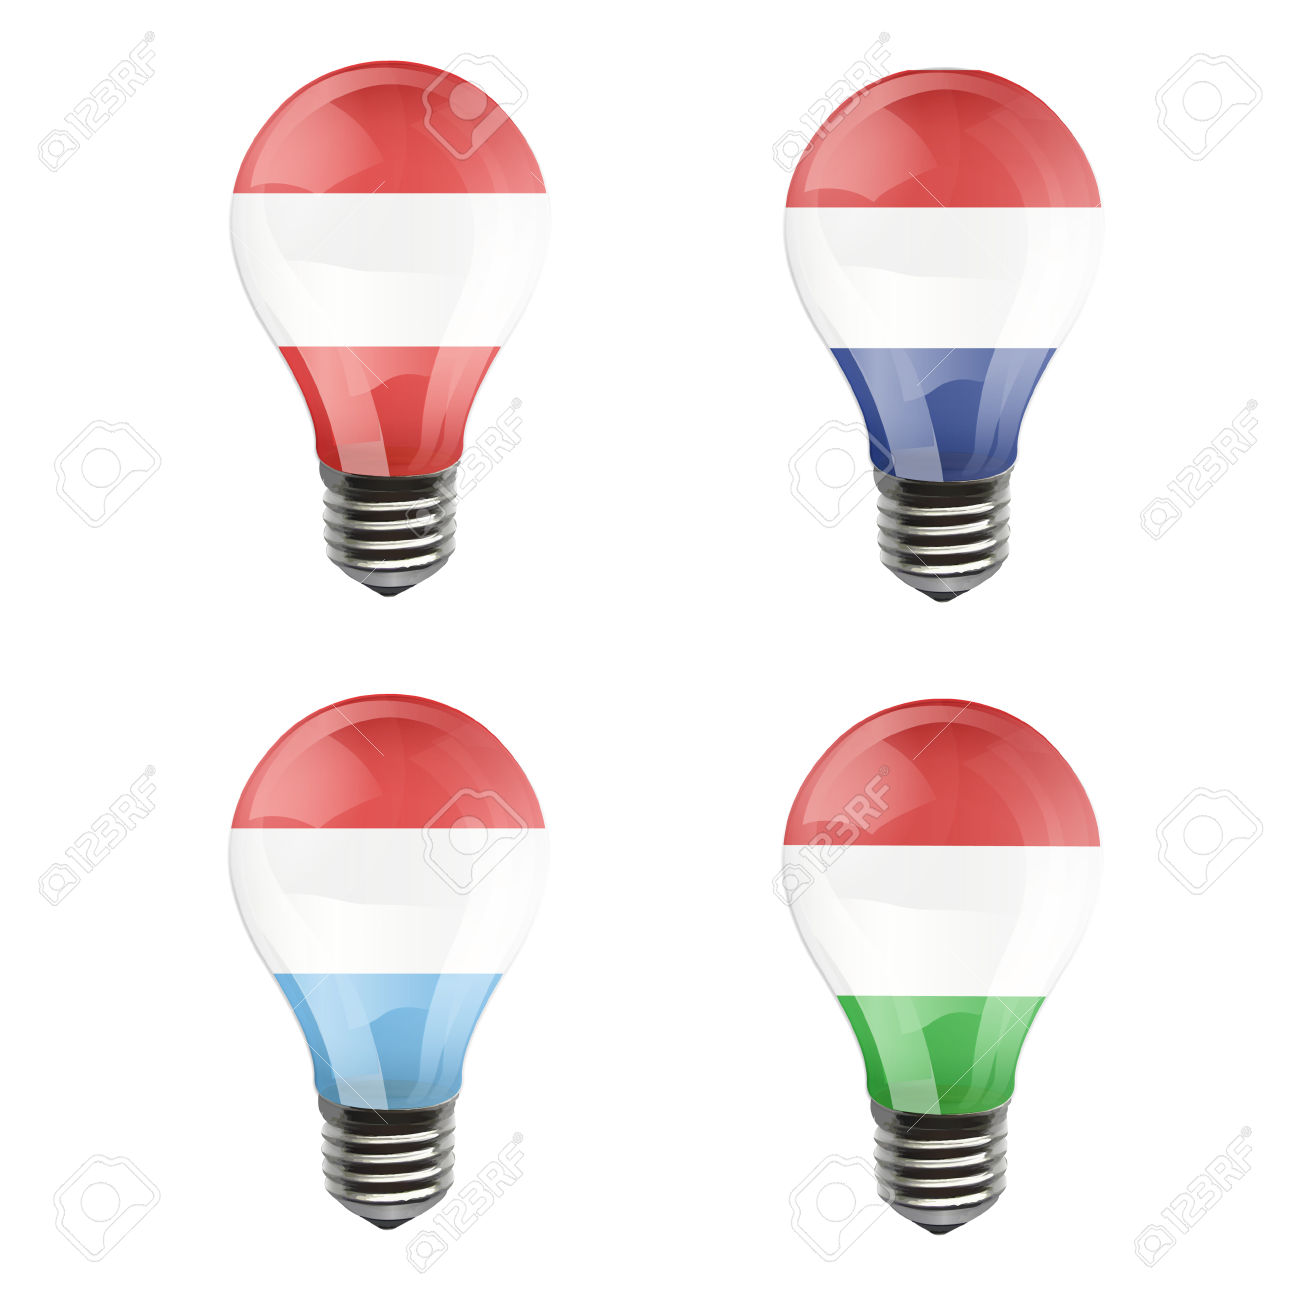 Realistic Bulb Of Austria, Luxembourg, Netherlands, Hungary.